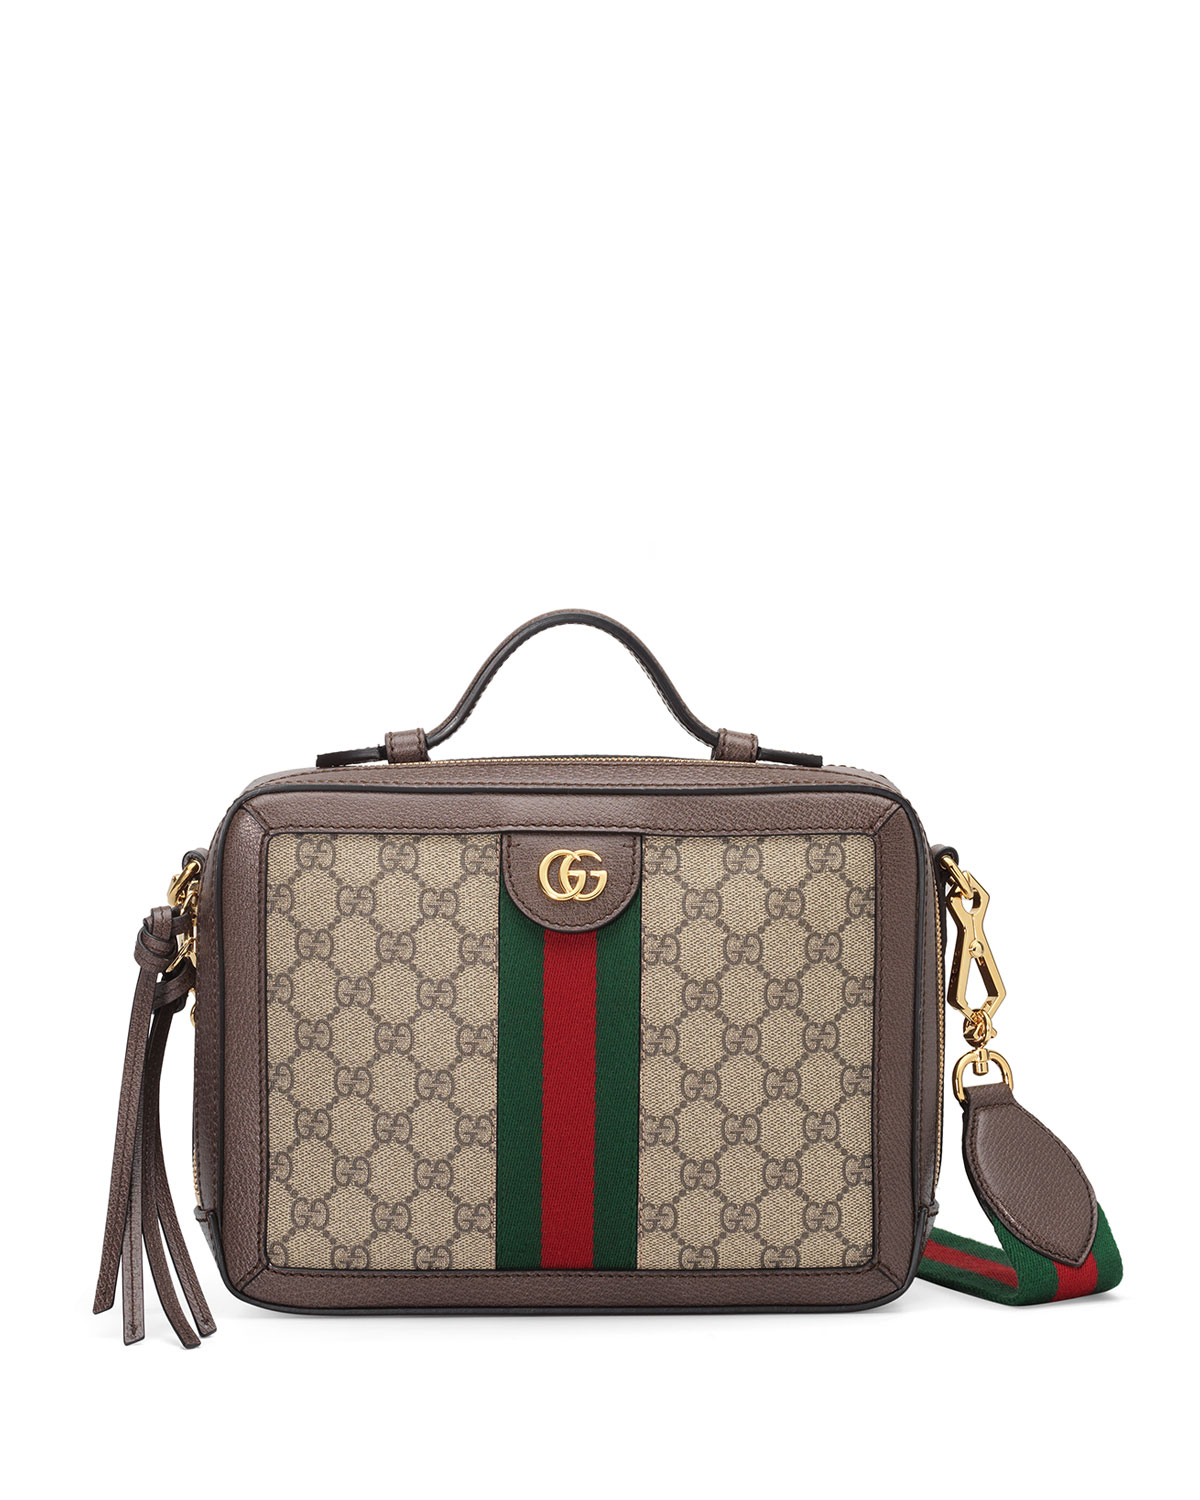 8a60e7eb4 Gucci Ophidia Small GG Supreme Shoulder Bag | Neiman Marcus